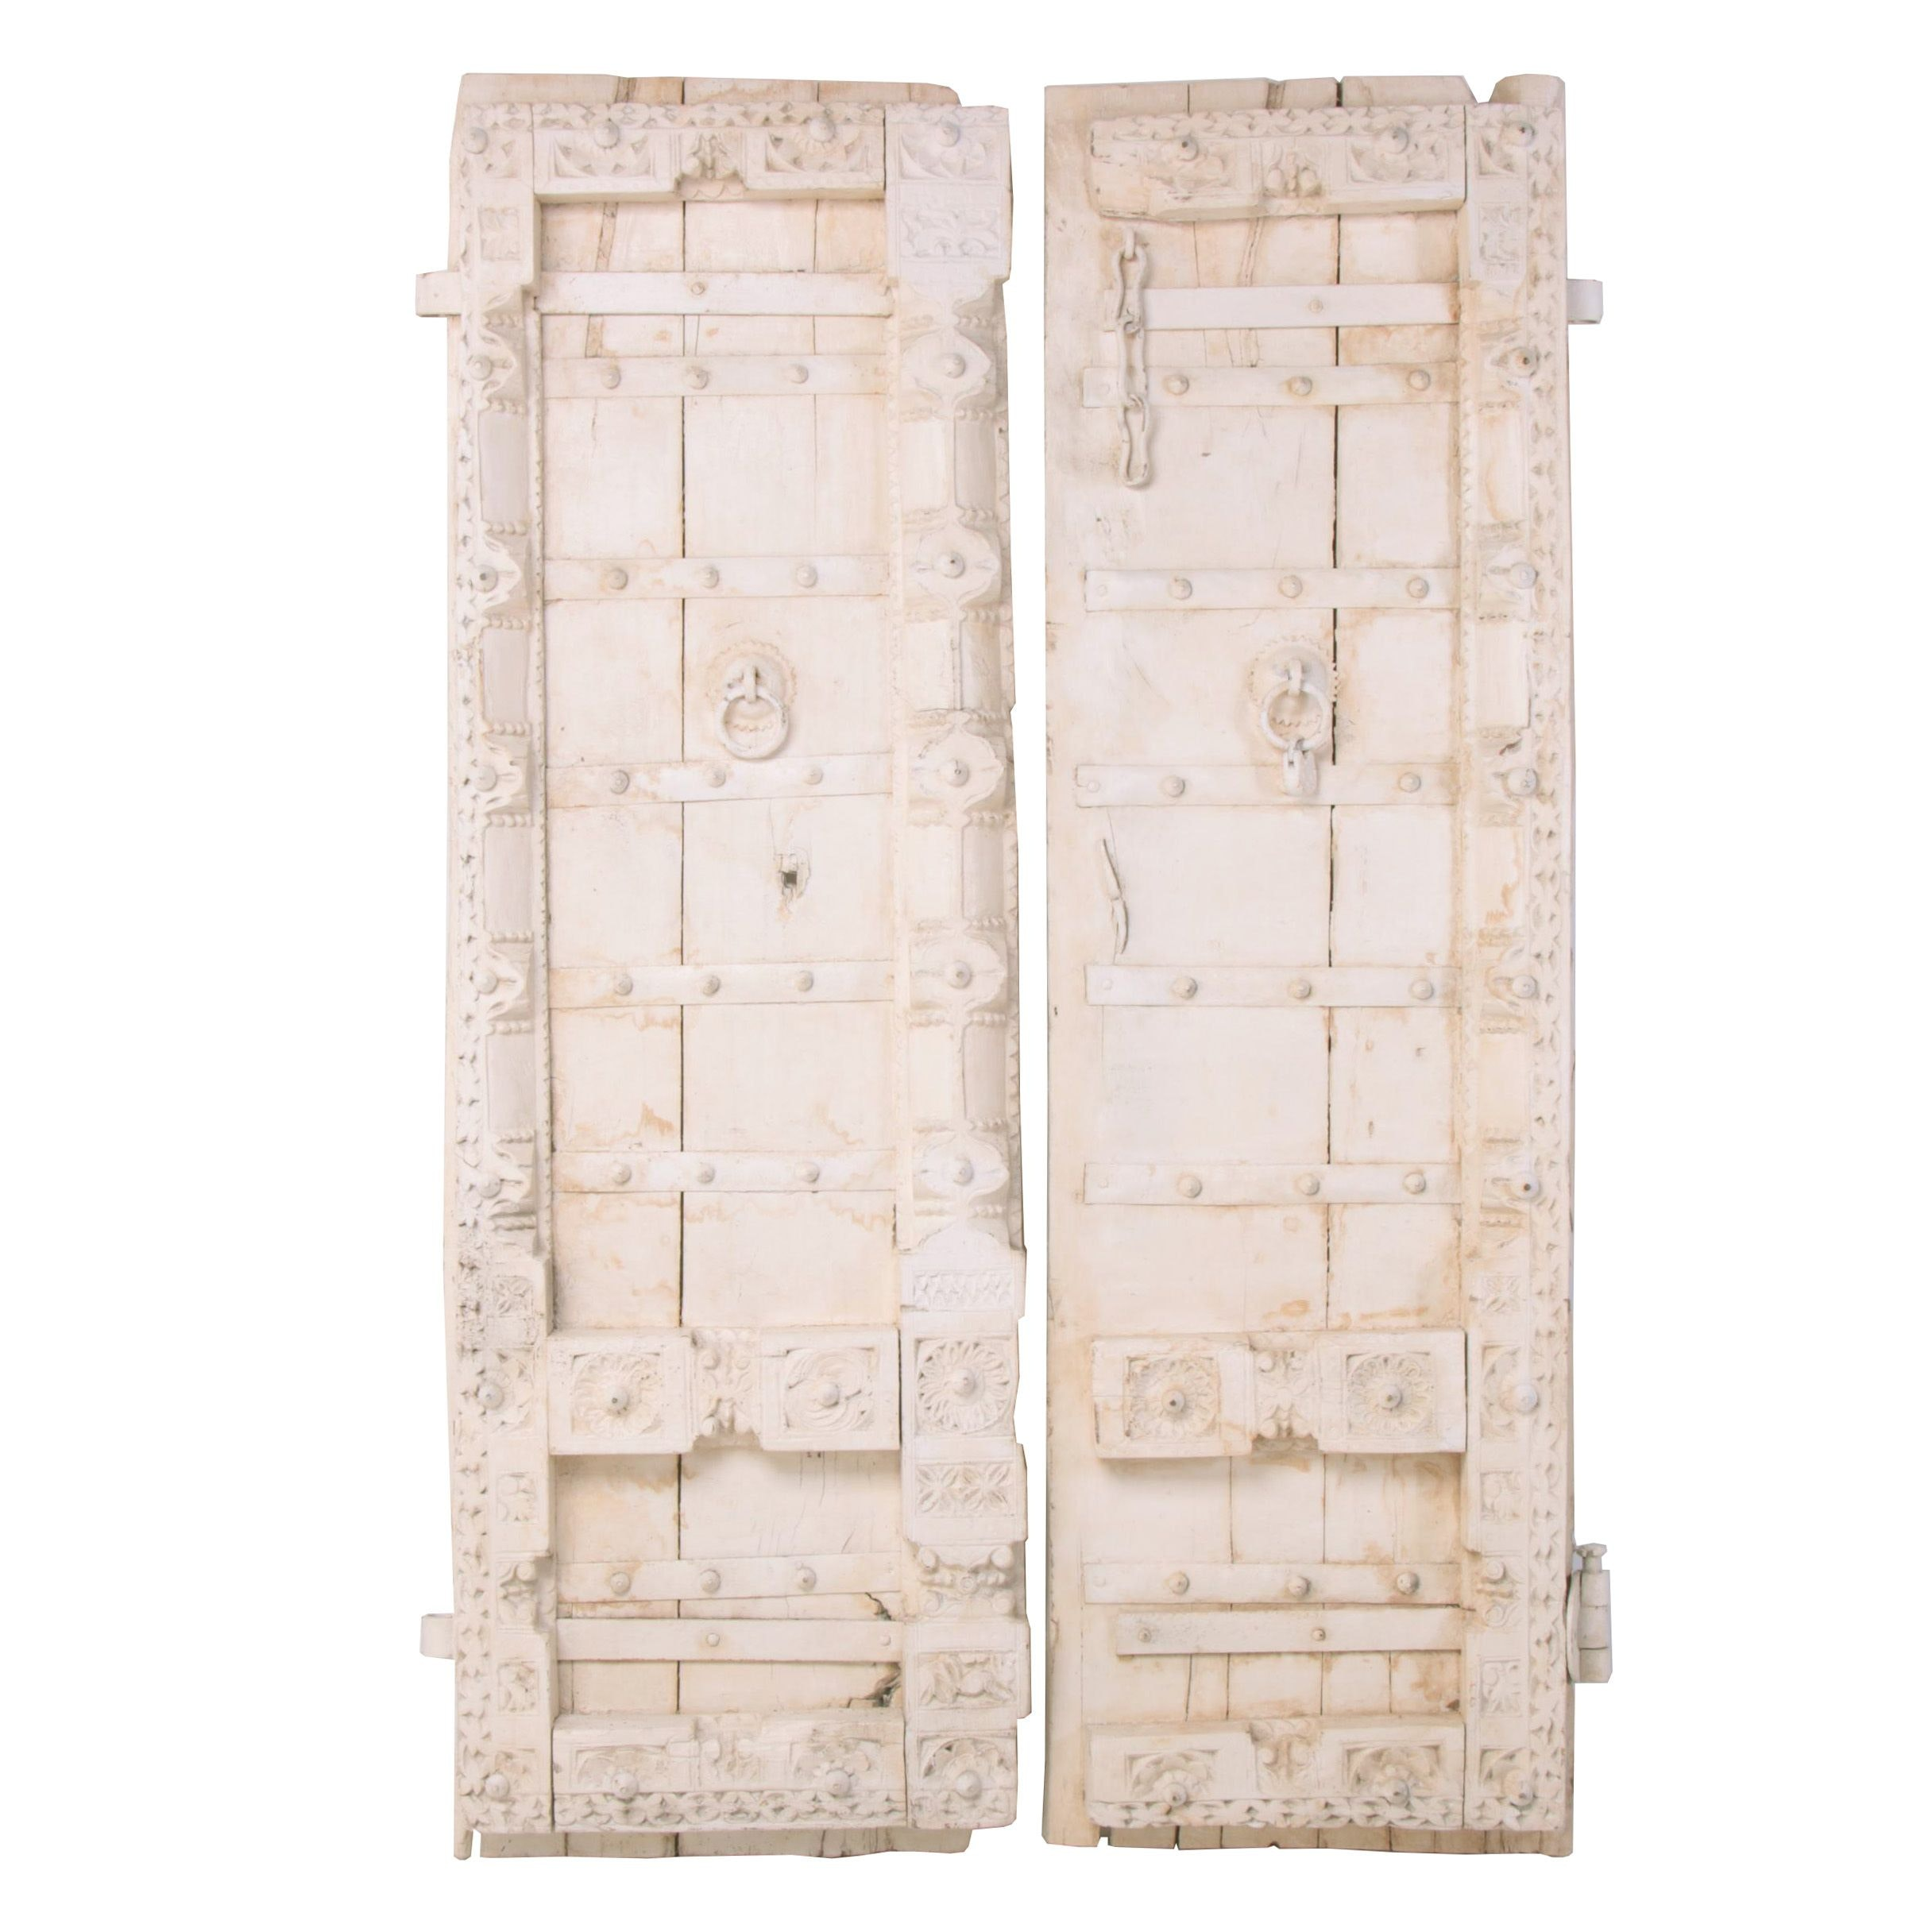 Reclaimed Indian Carved and Painted Hardwood Doors, 20th Century